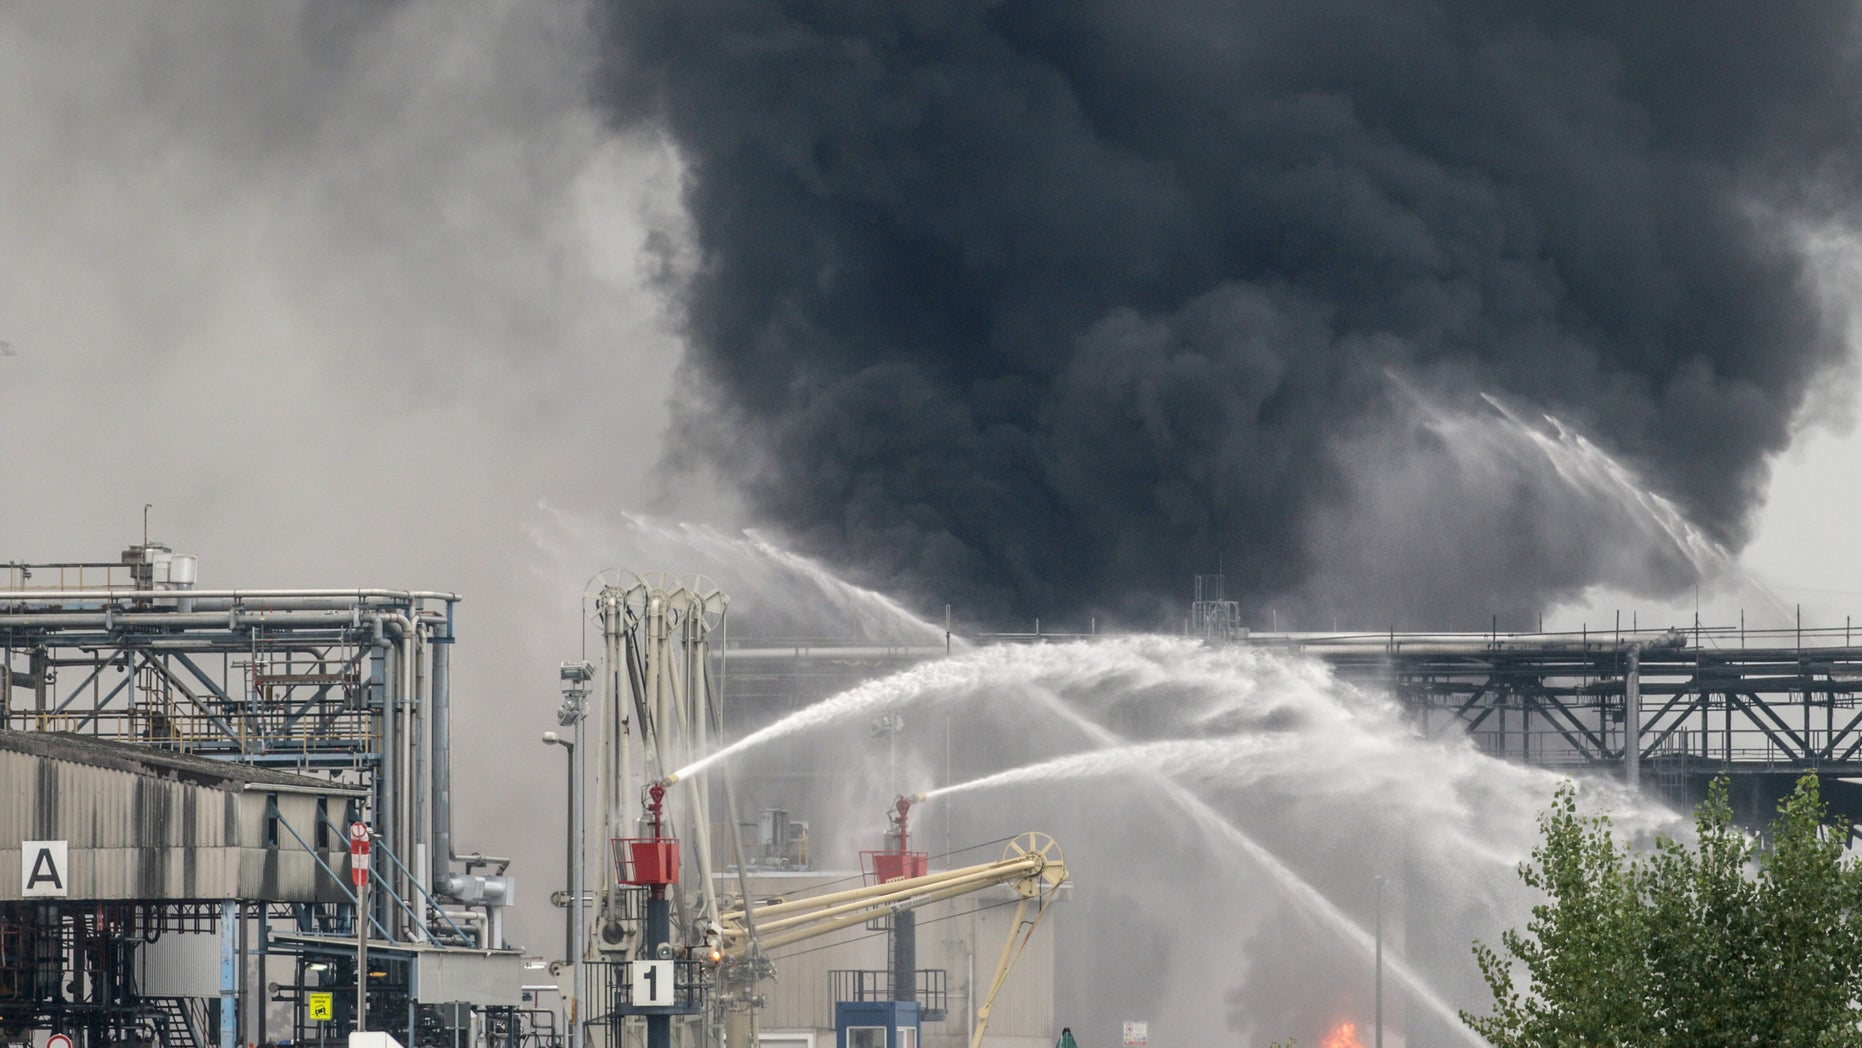 Explosion at BASF plant, Germany